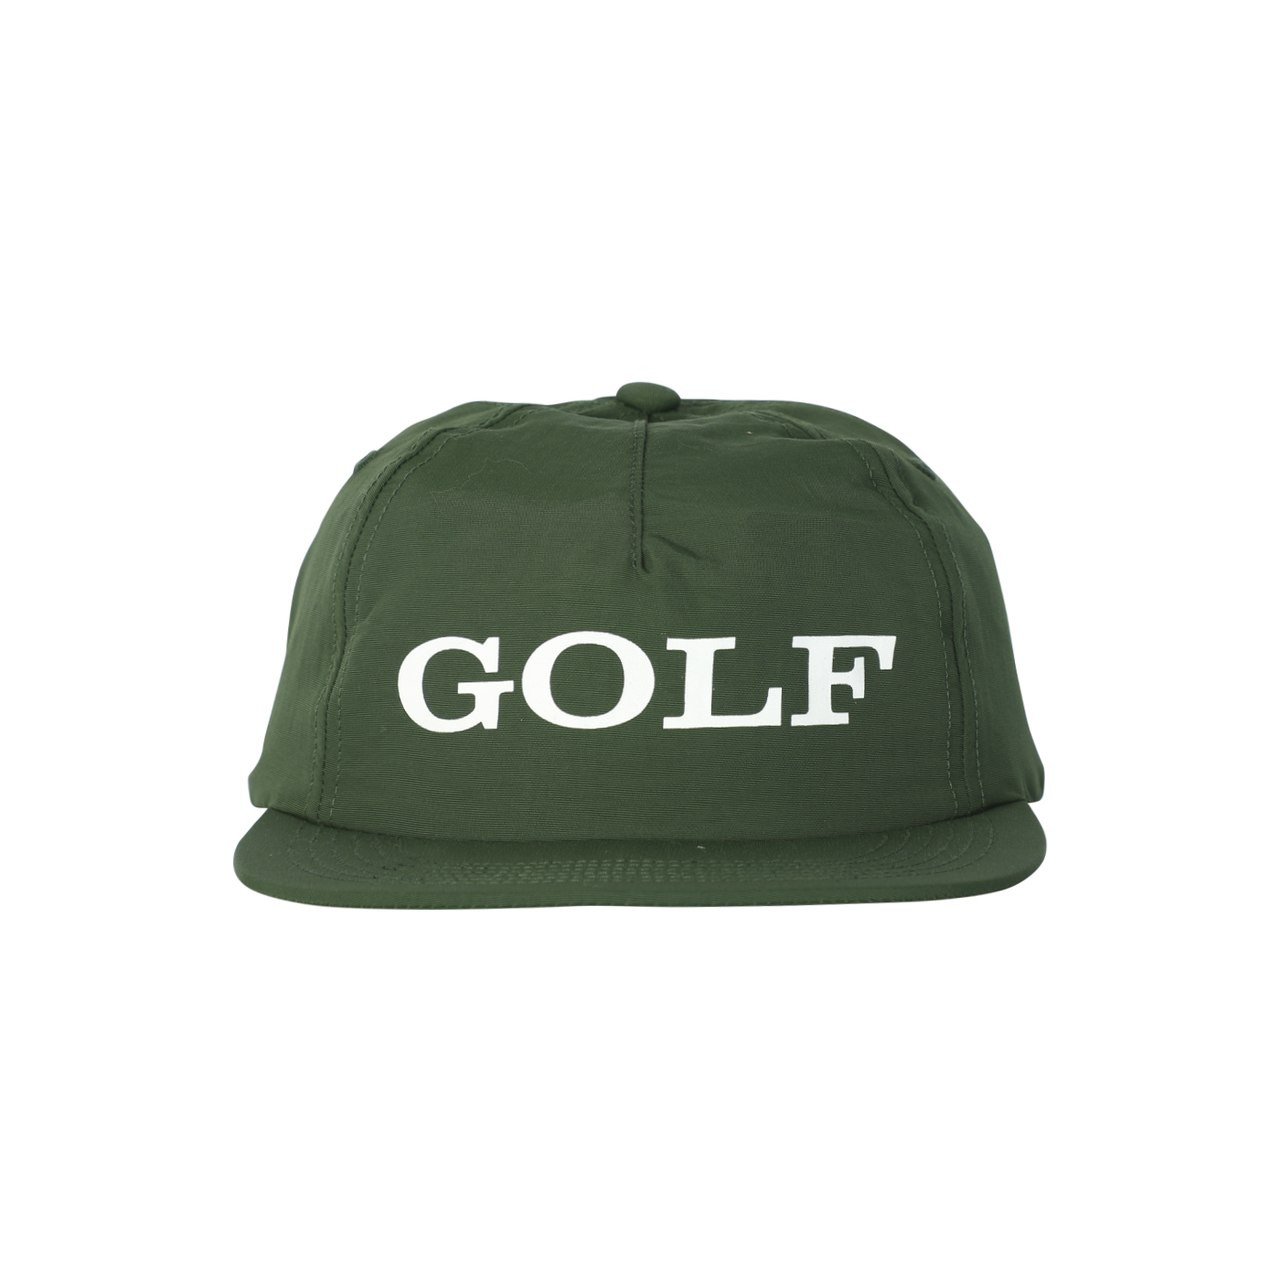 CORPORATE 5 PANEL HAT - FOREST GREEN by GOLF WANG - GOLF WANG bc6943d4f18